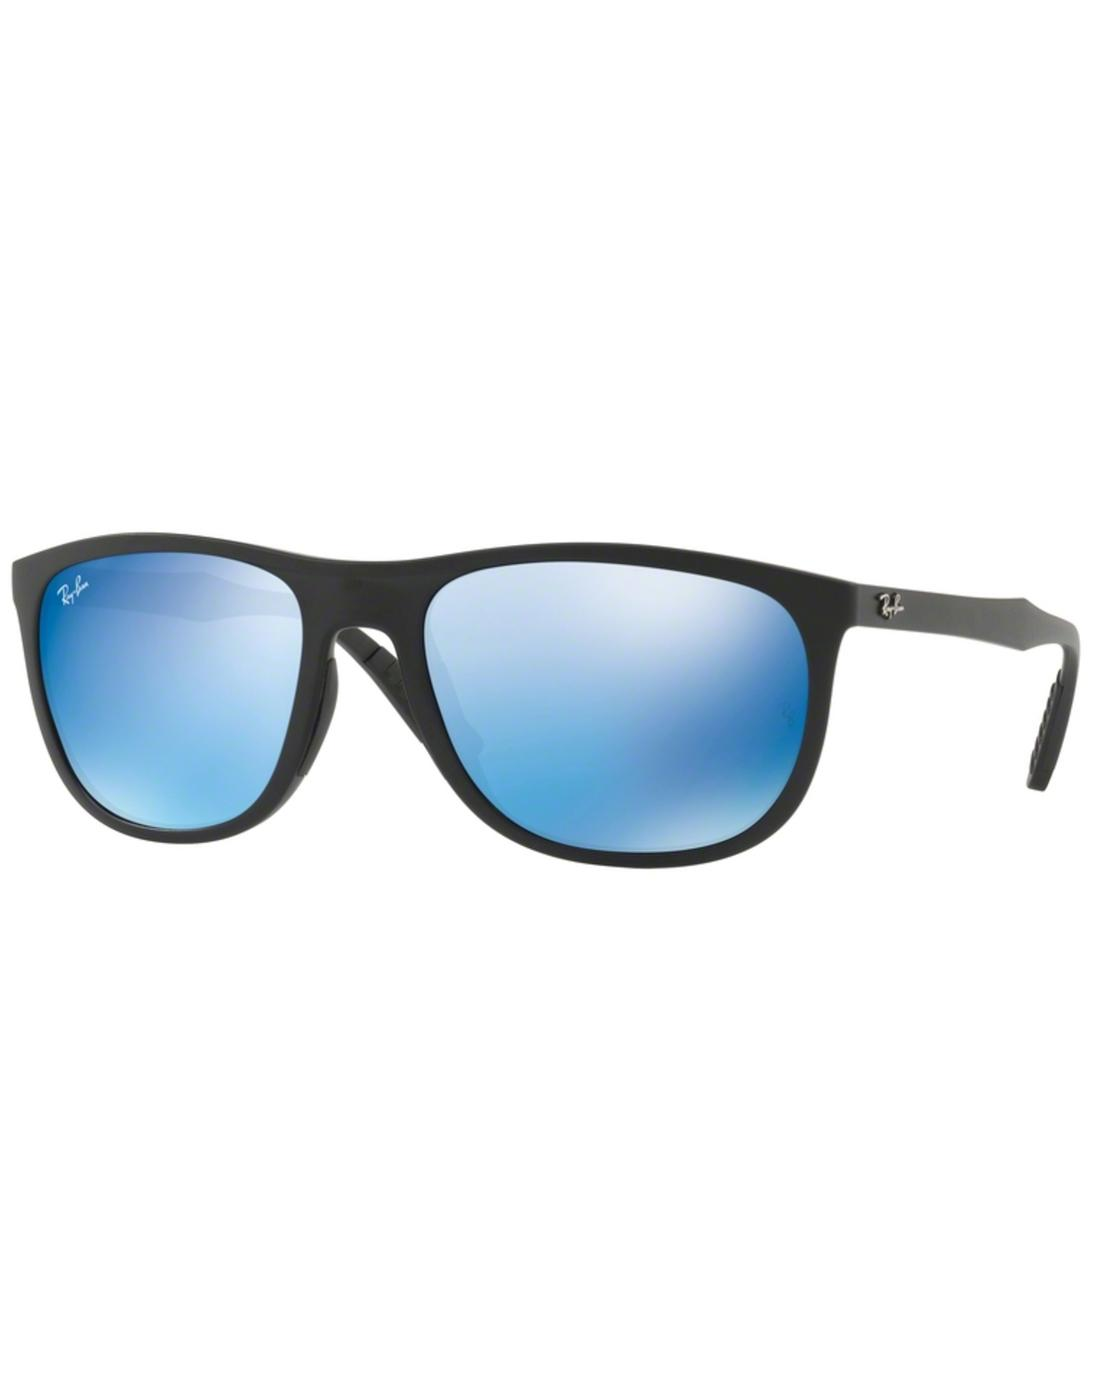 RAY-BAN Retro Wrap Around Wayfarer Sunglasses Blue